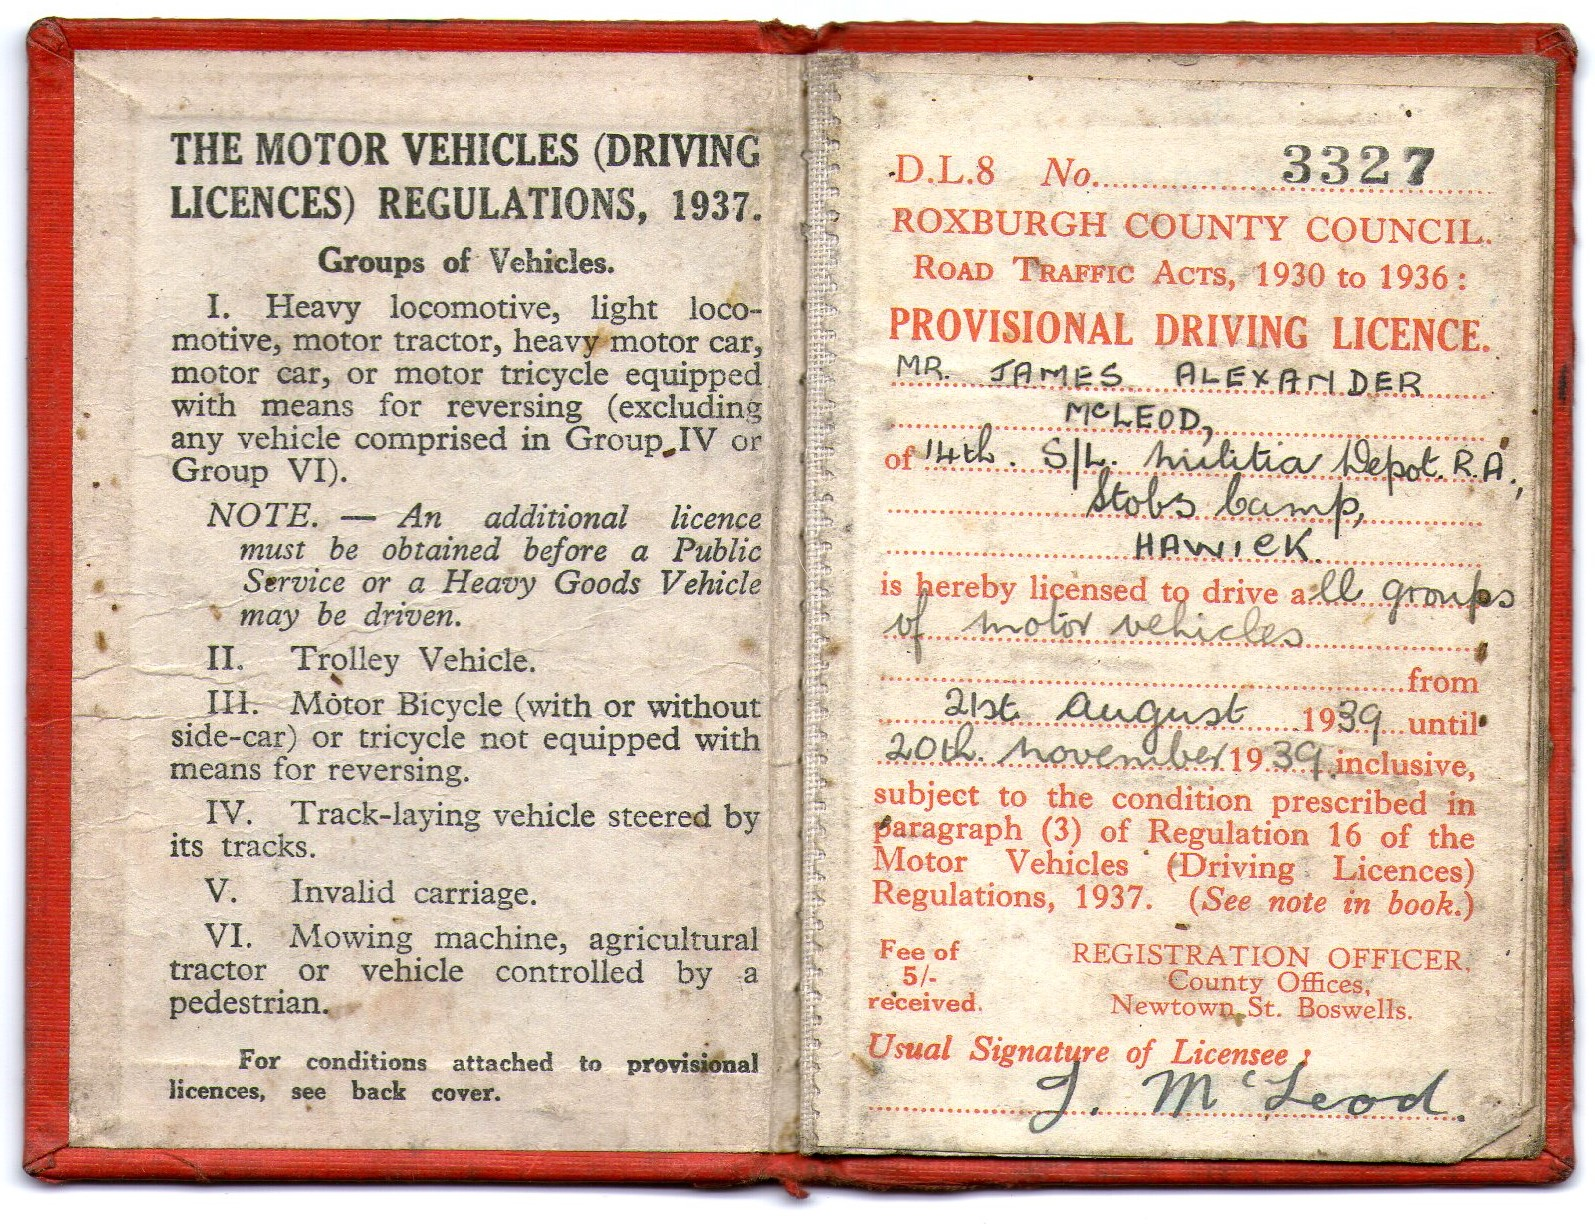 Driving Licence; 1939; Second World War; James Alexander McLeod; 3327